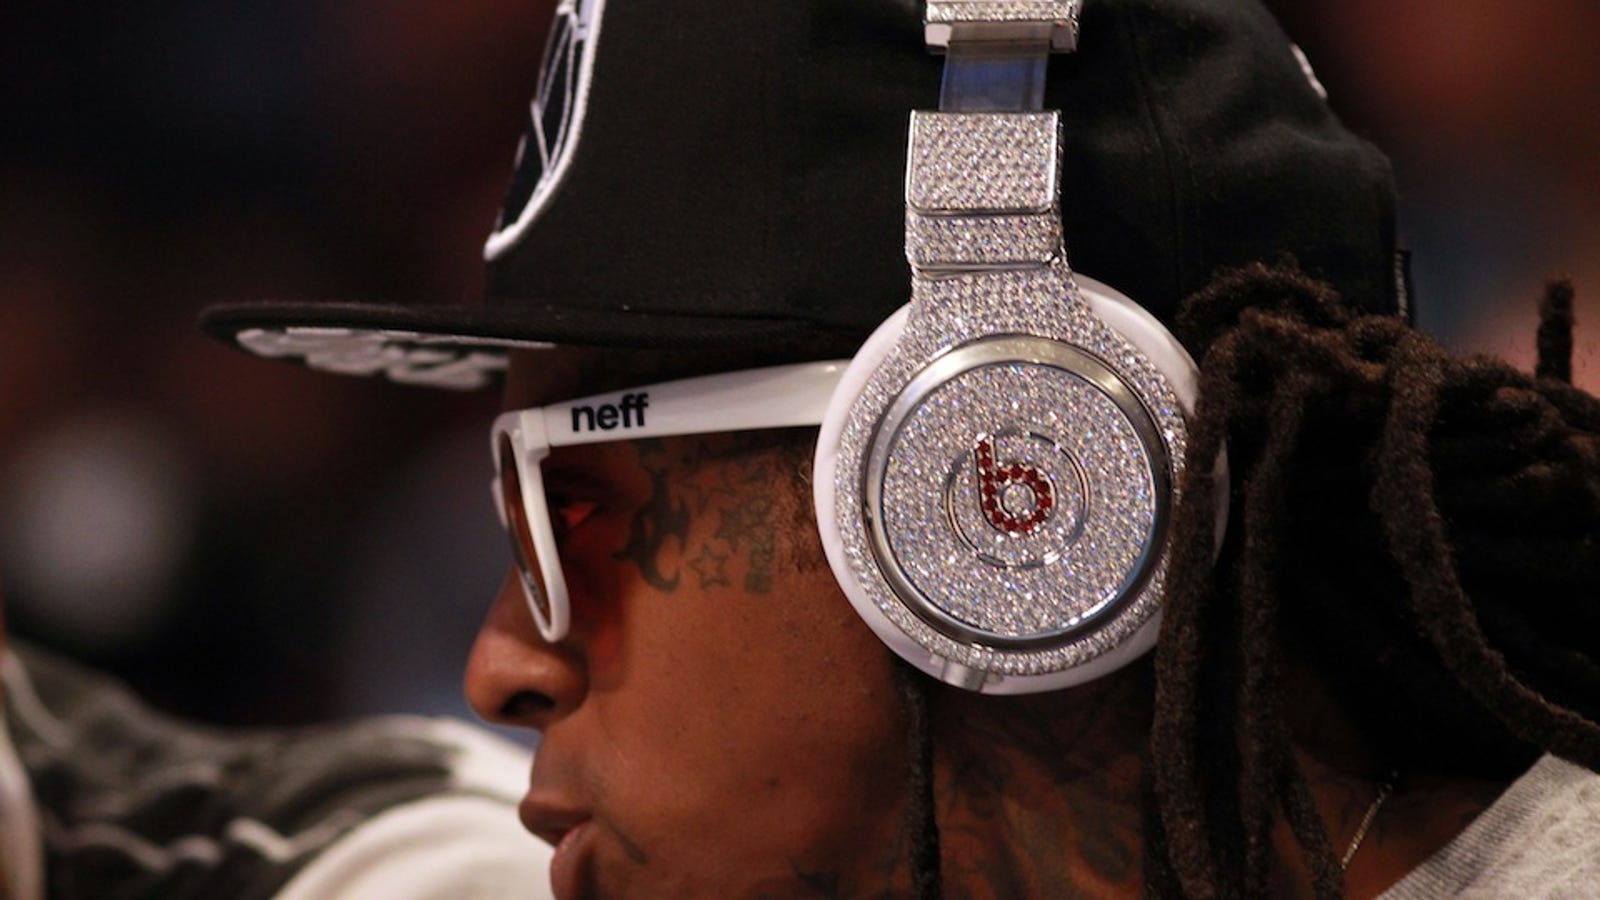 rose gold earbuds case - Lil Wayne Wearing $1 Million Beats by Dre Headphones Is a Diamond Studded Mess